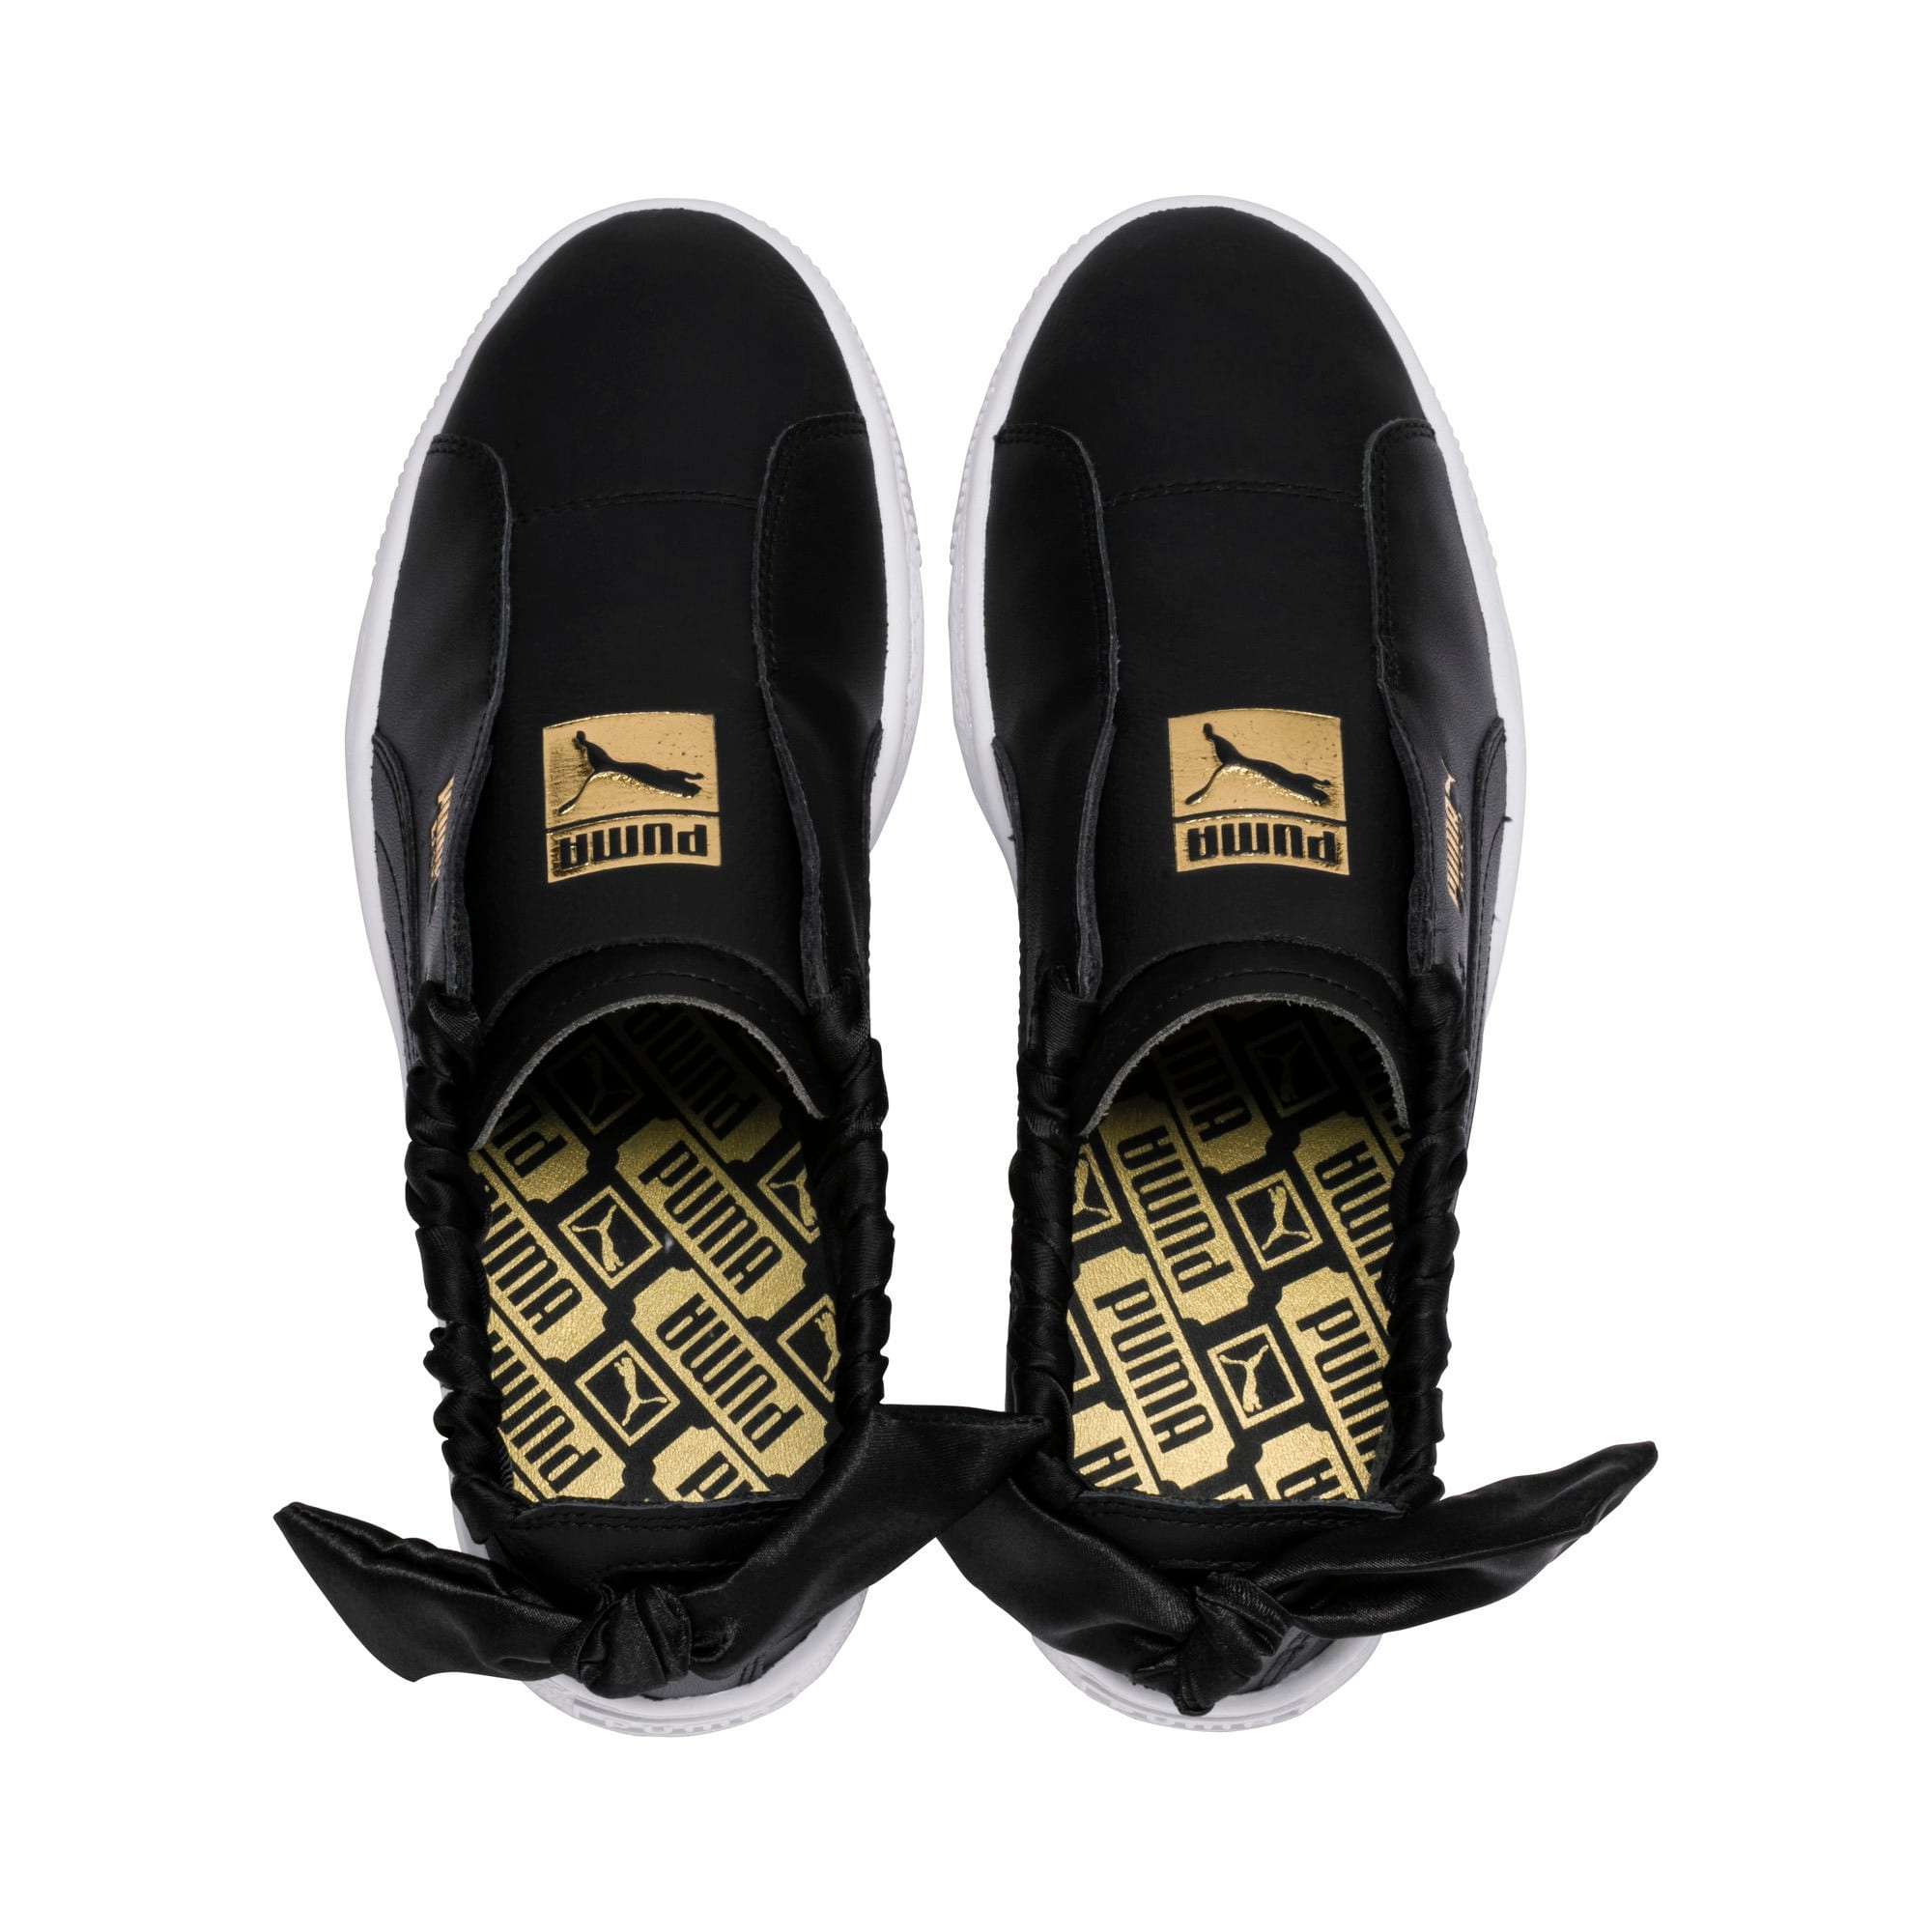 Thumbnail 7 of PUMA Basket Twist Women's Trainers, Puma Black-Puma Team Gold, medium-IND